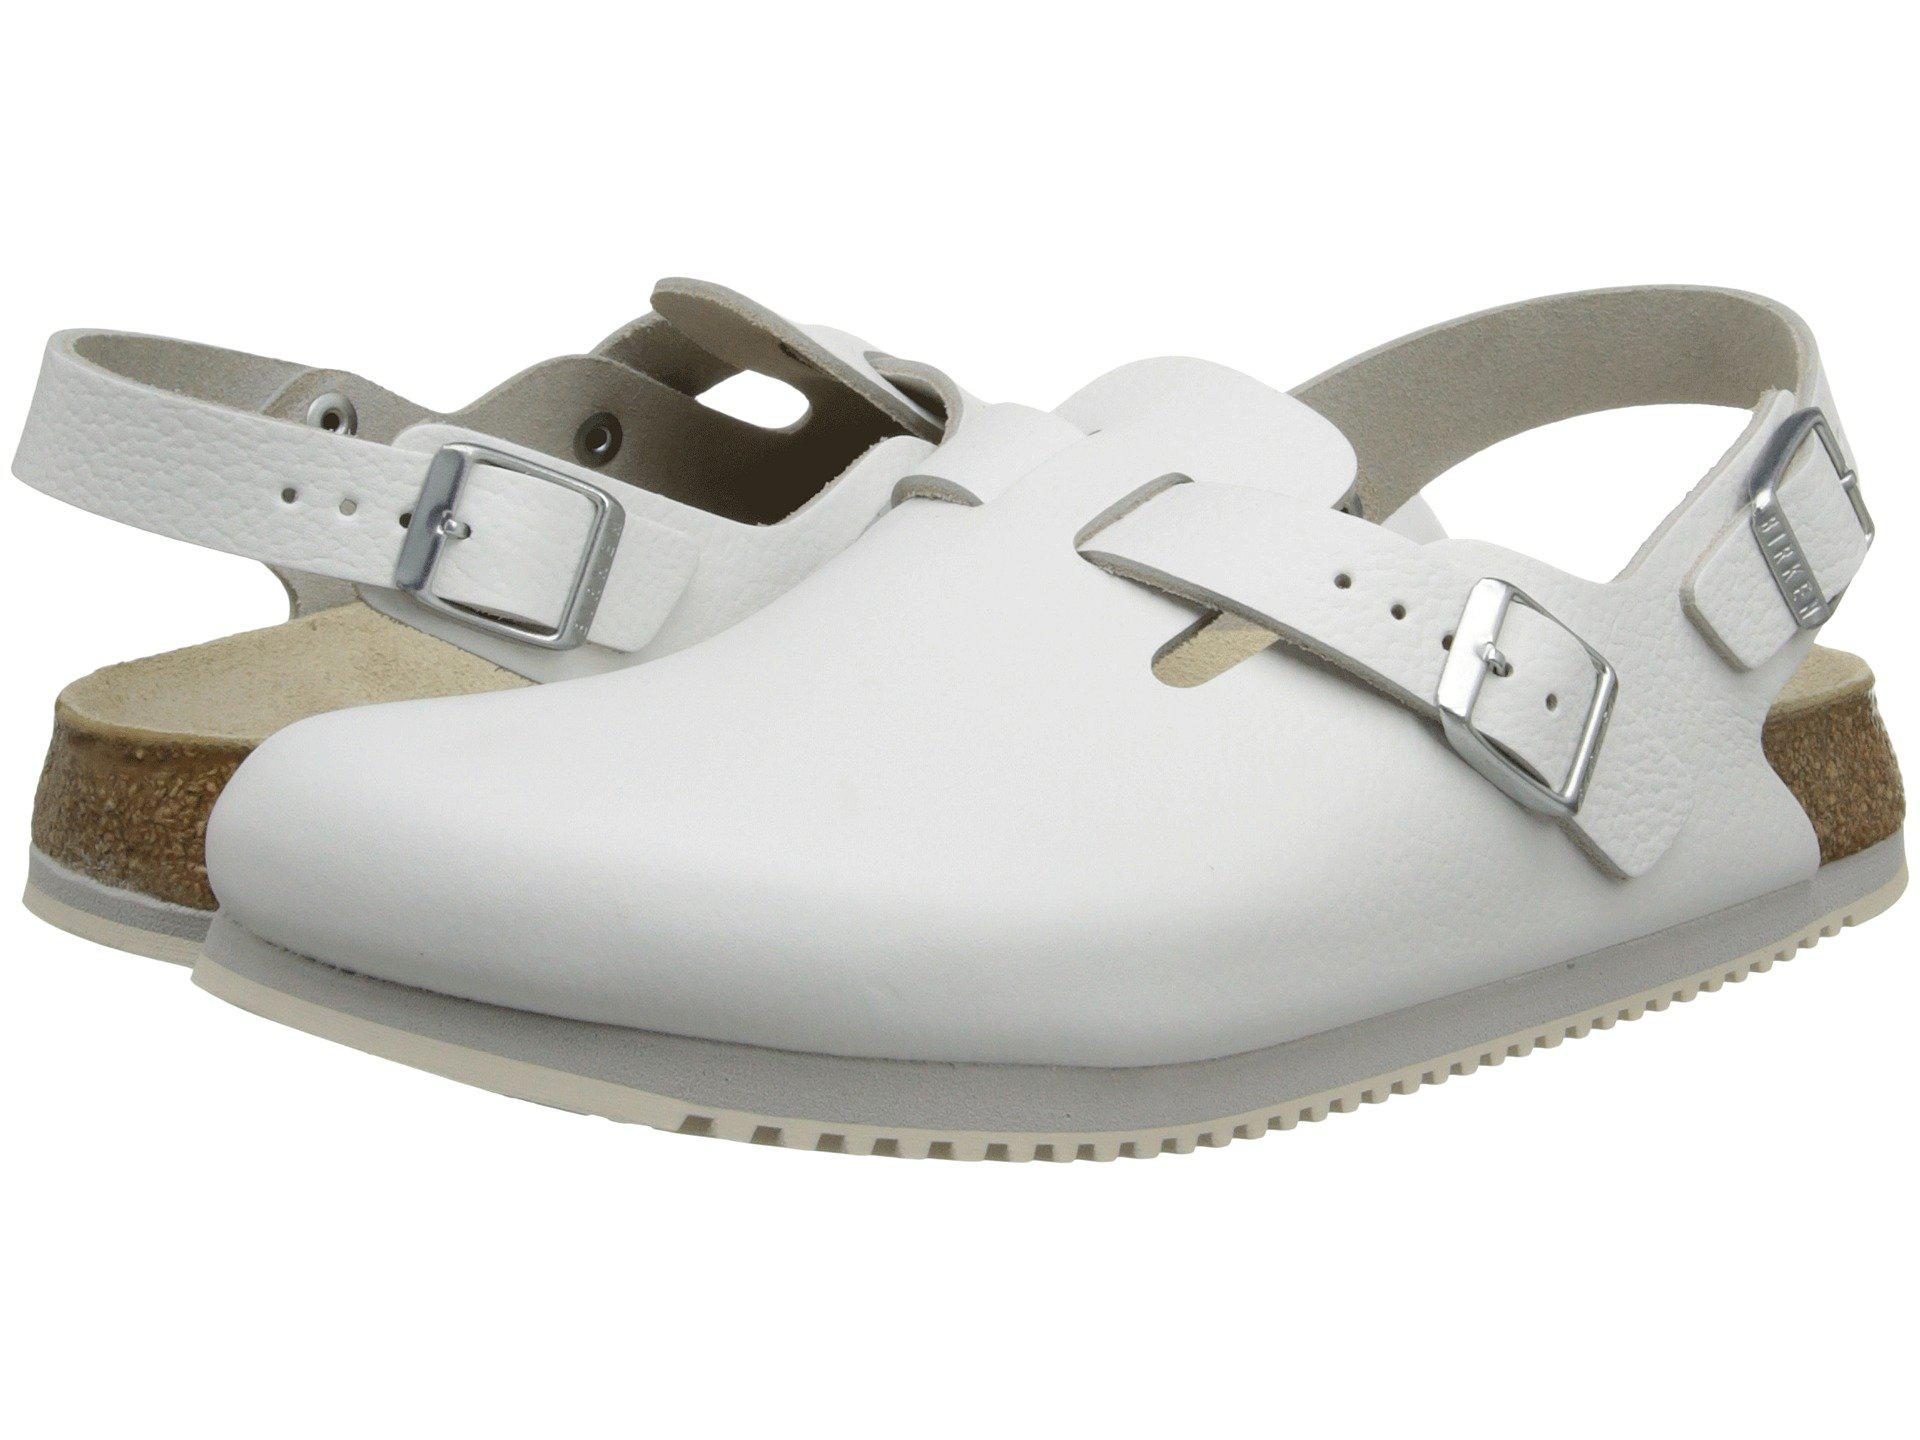 b6944f79cc8c Lyst - Birkenstock Tokyo Super Grip (white Leather) Shoes in White